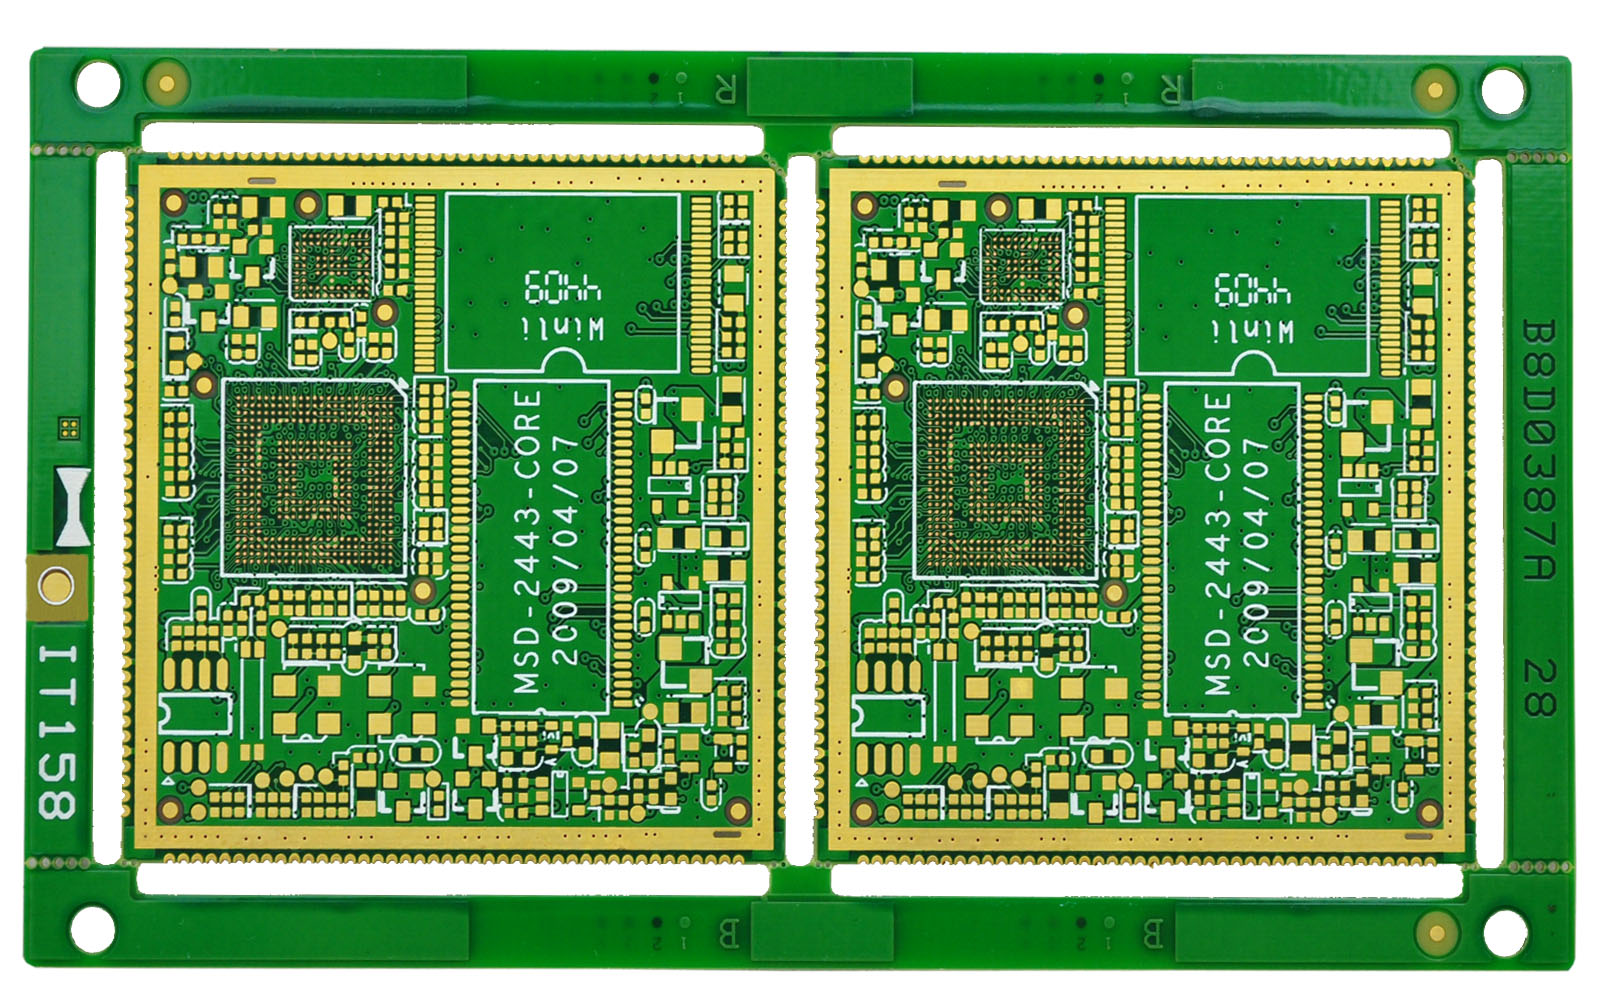 Half Hole Plated Pcb Hdi Bpm13308 Photo By Layers Multilayer Printed Circuit Board China Multi Layer Fr4